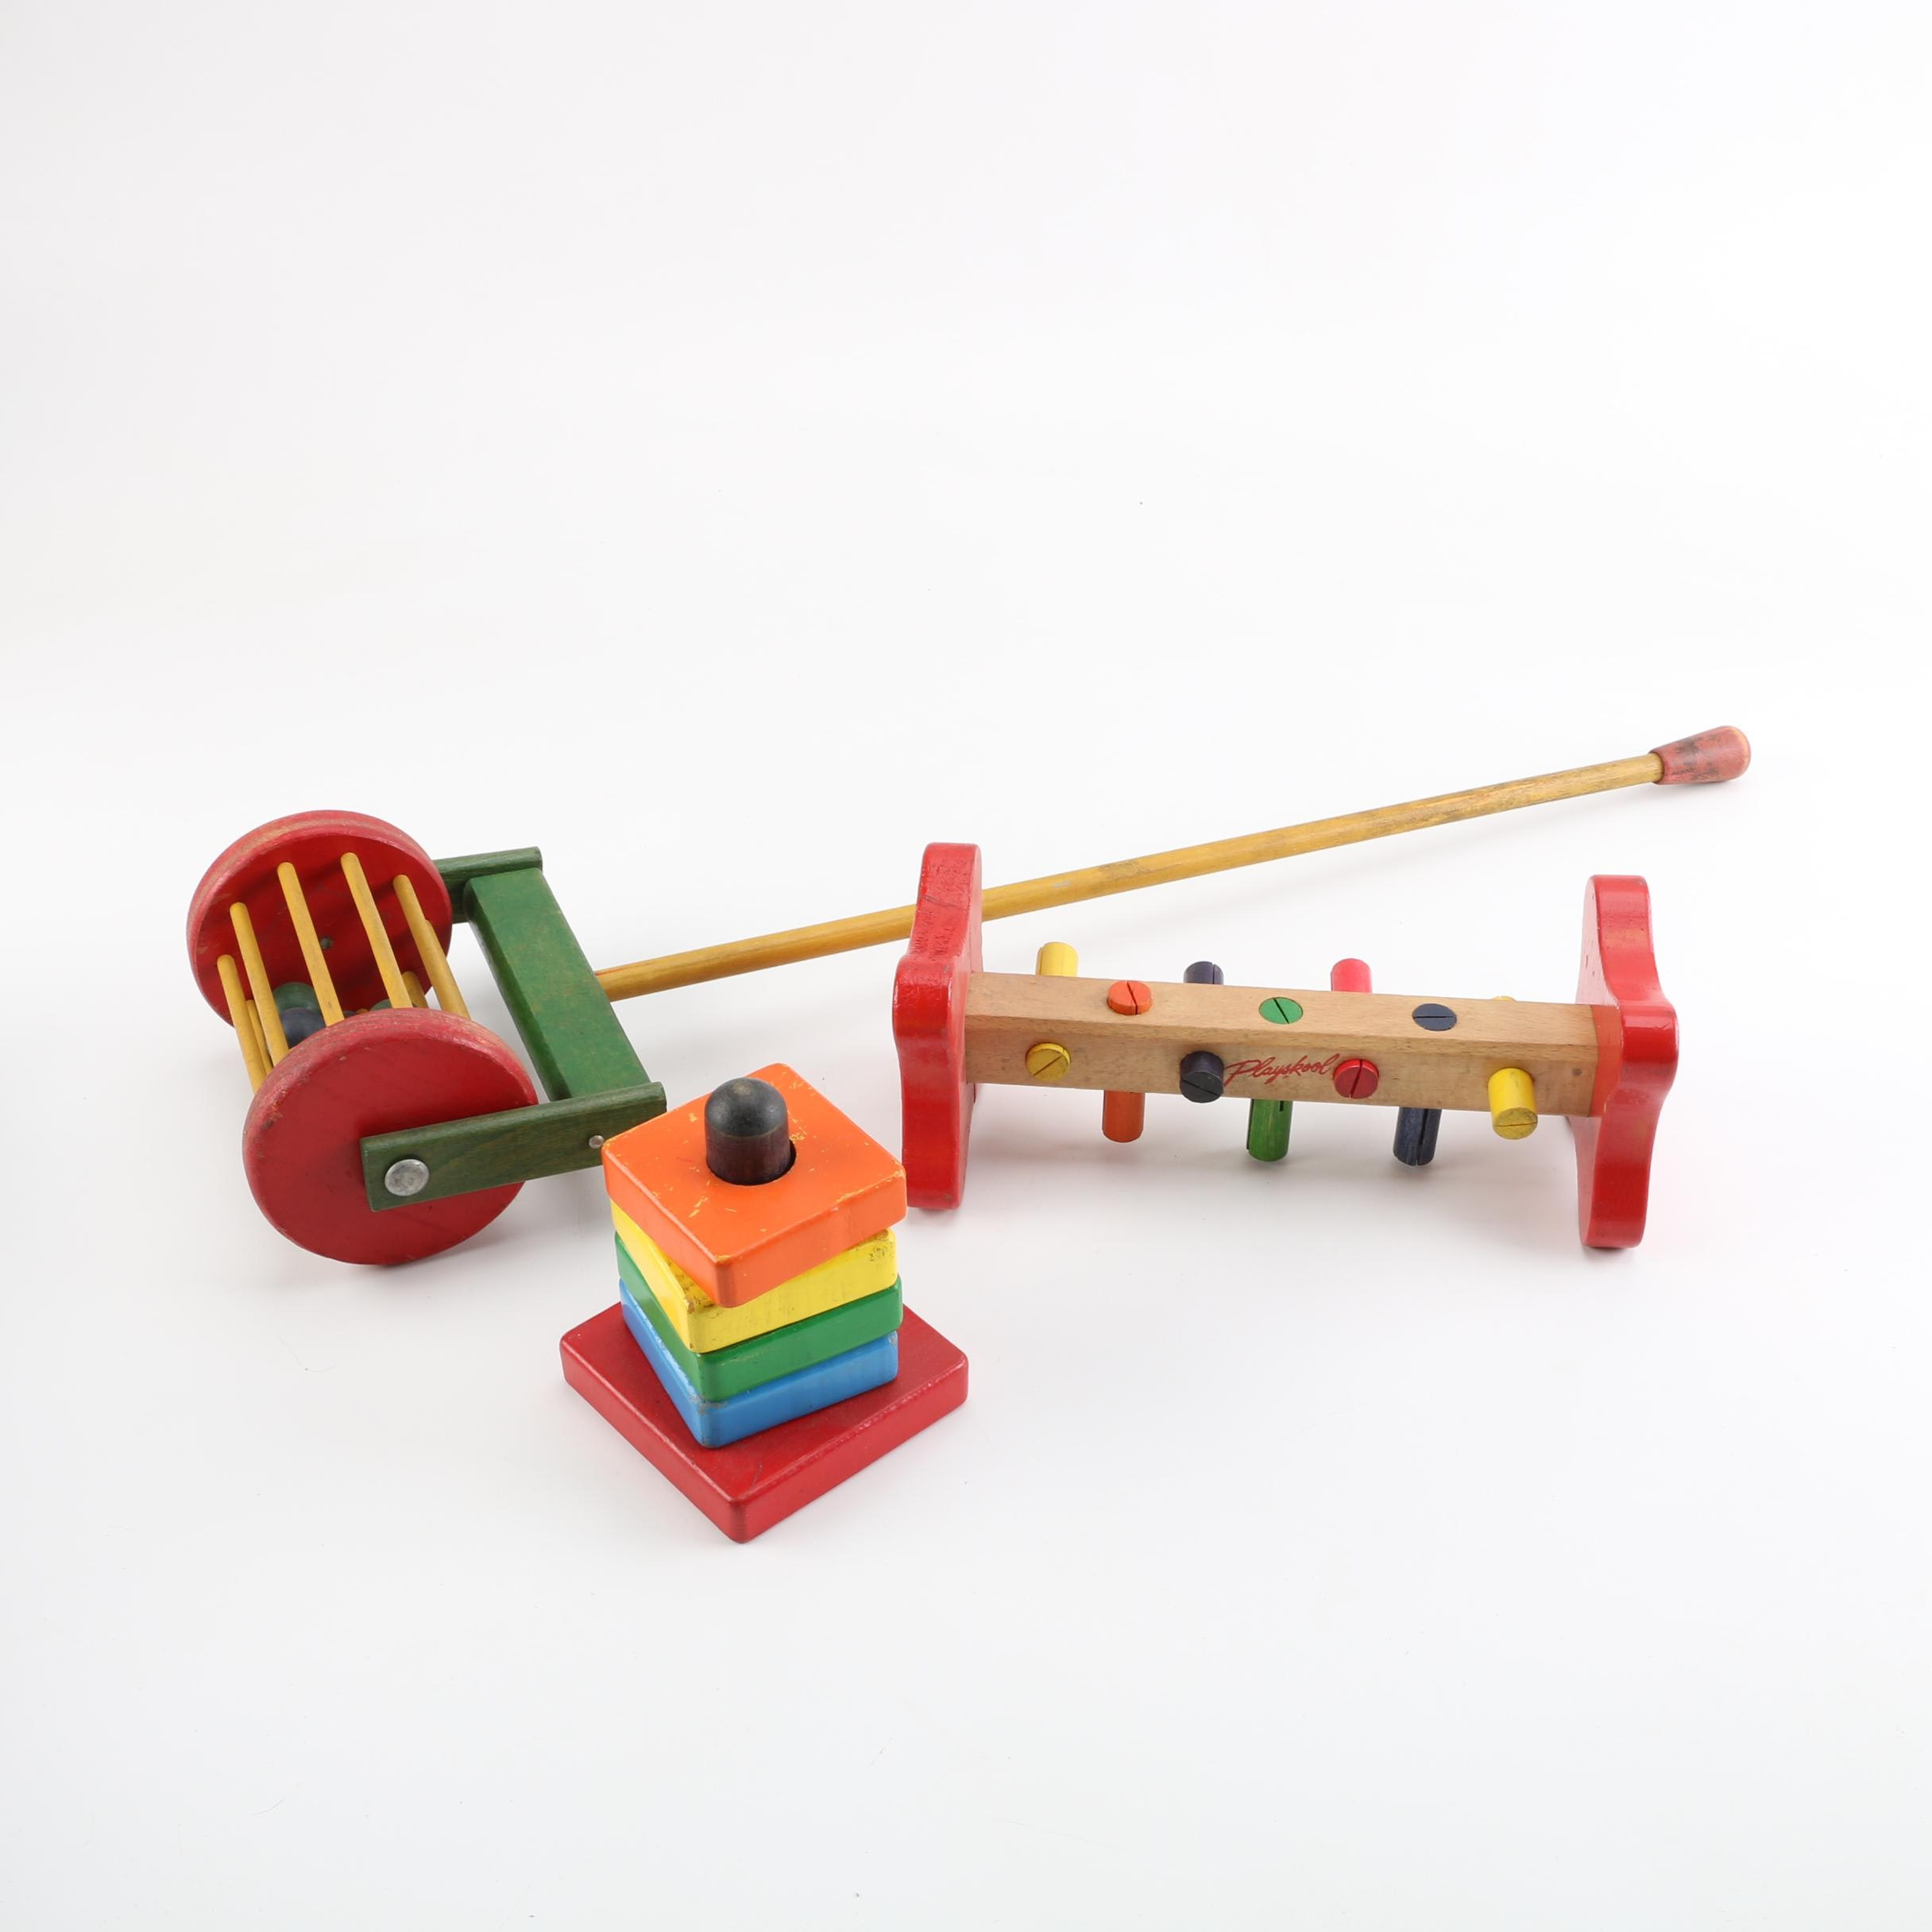 Vintage Colorful Wooden Preschool Age Toys